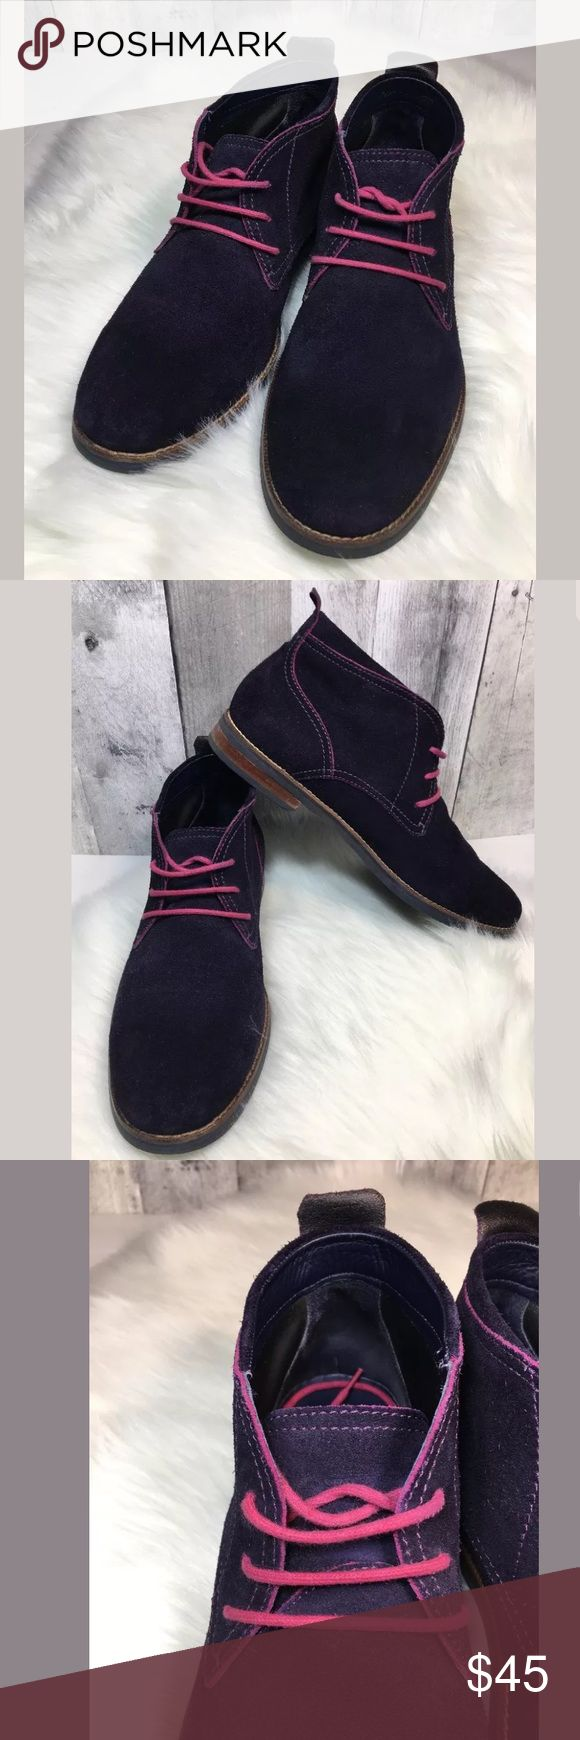 COLE HAAN 'Charles' Purple Suede Chukka Boots COLE HAAN Men's 'Charles' Purple Suede Chukka Boots Sz 11  Boots were gently worn and have normal Sign of wear - please review all pictures. Cole Haan Shoes Chukka Boots